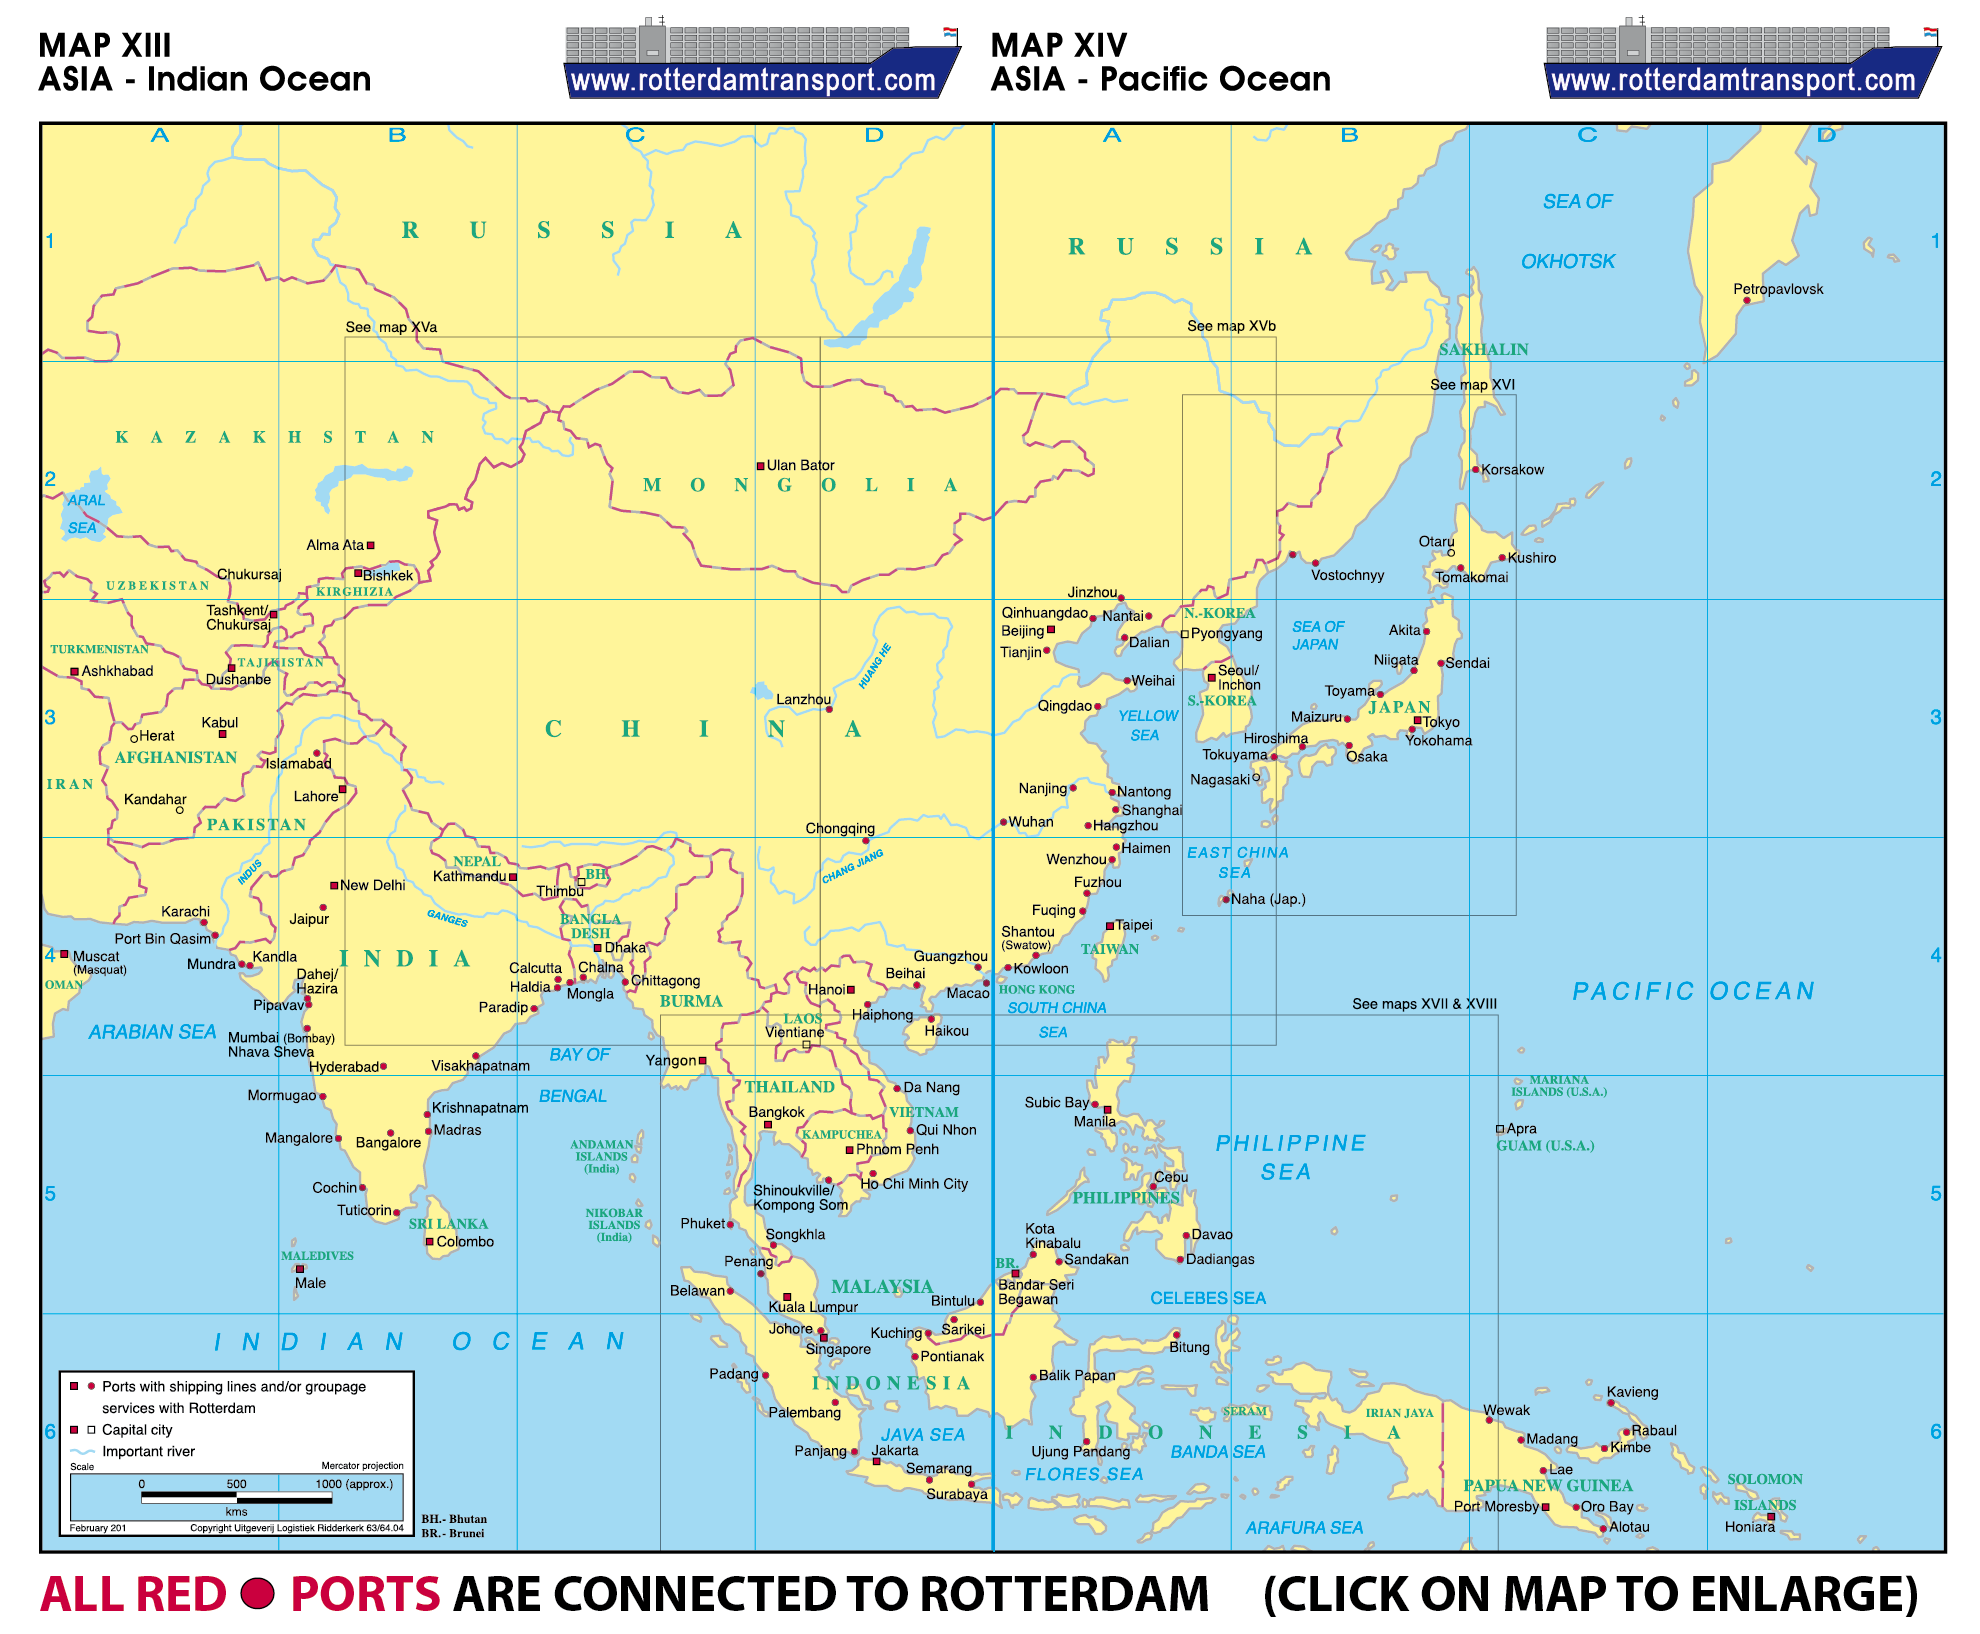 Map Of Asia Seas.Www Rotterdamtransport Com World Port Maps